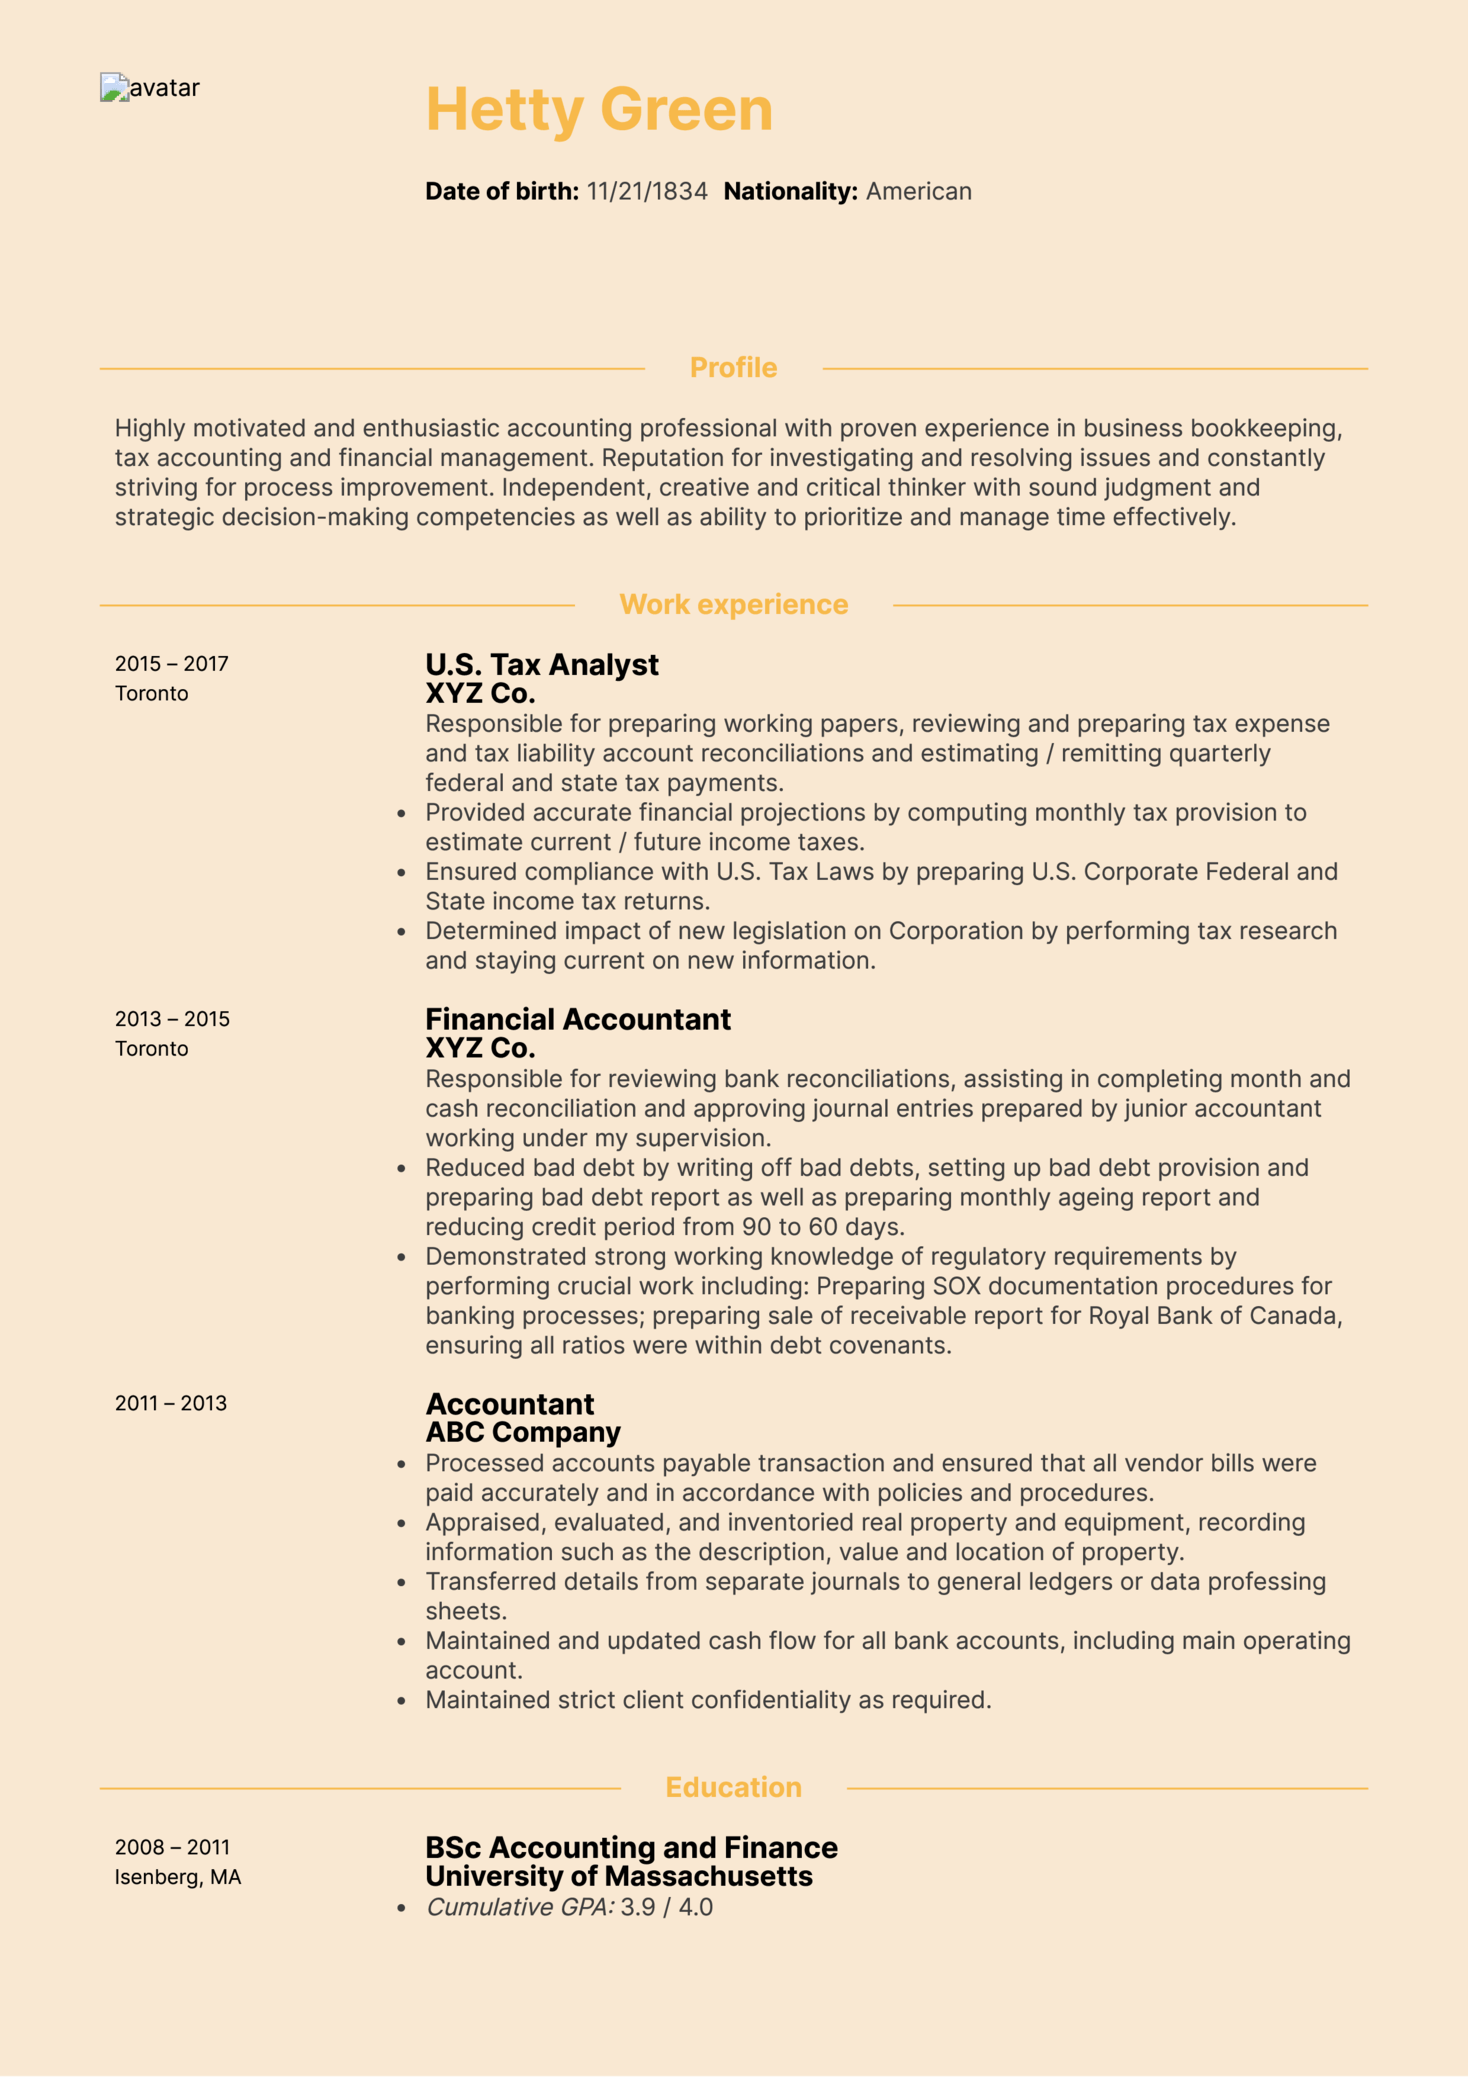 Cpa tax accountant resume sample resume samples career help center cpa tax accountant resume sample thecheapjerseys Choice Image